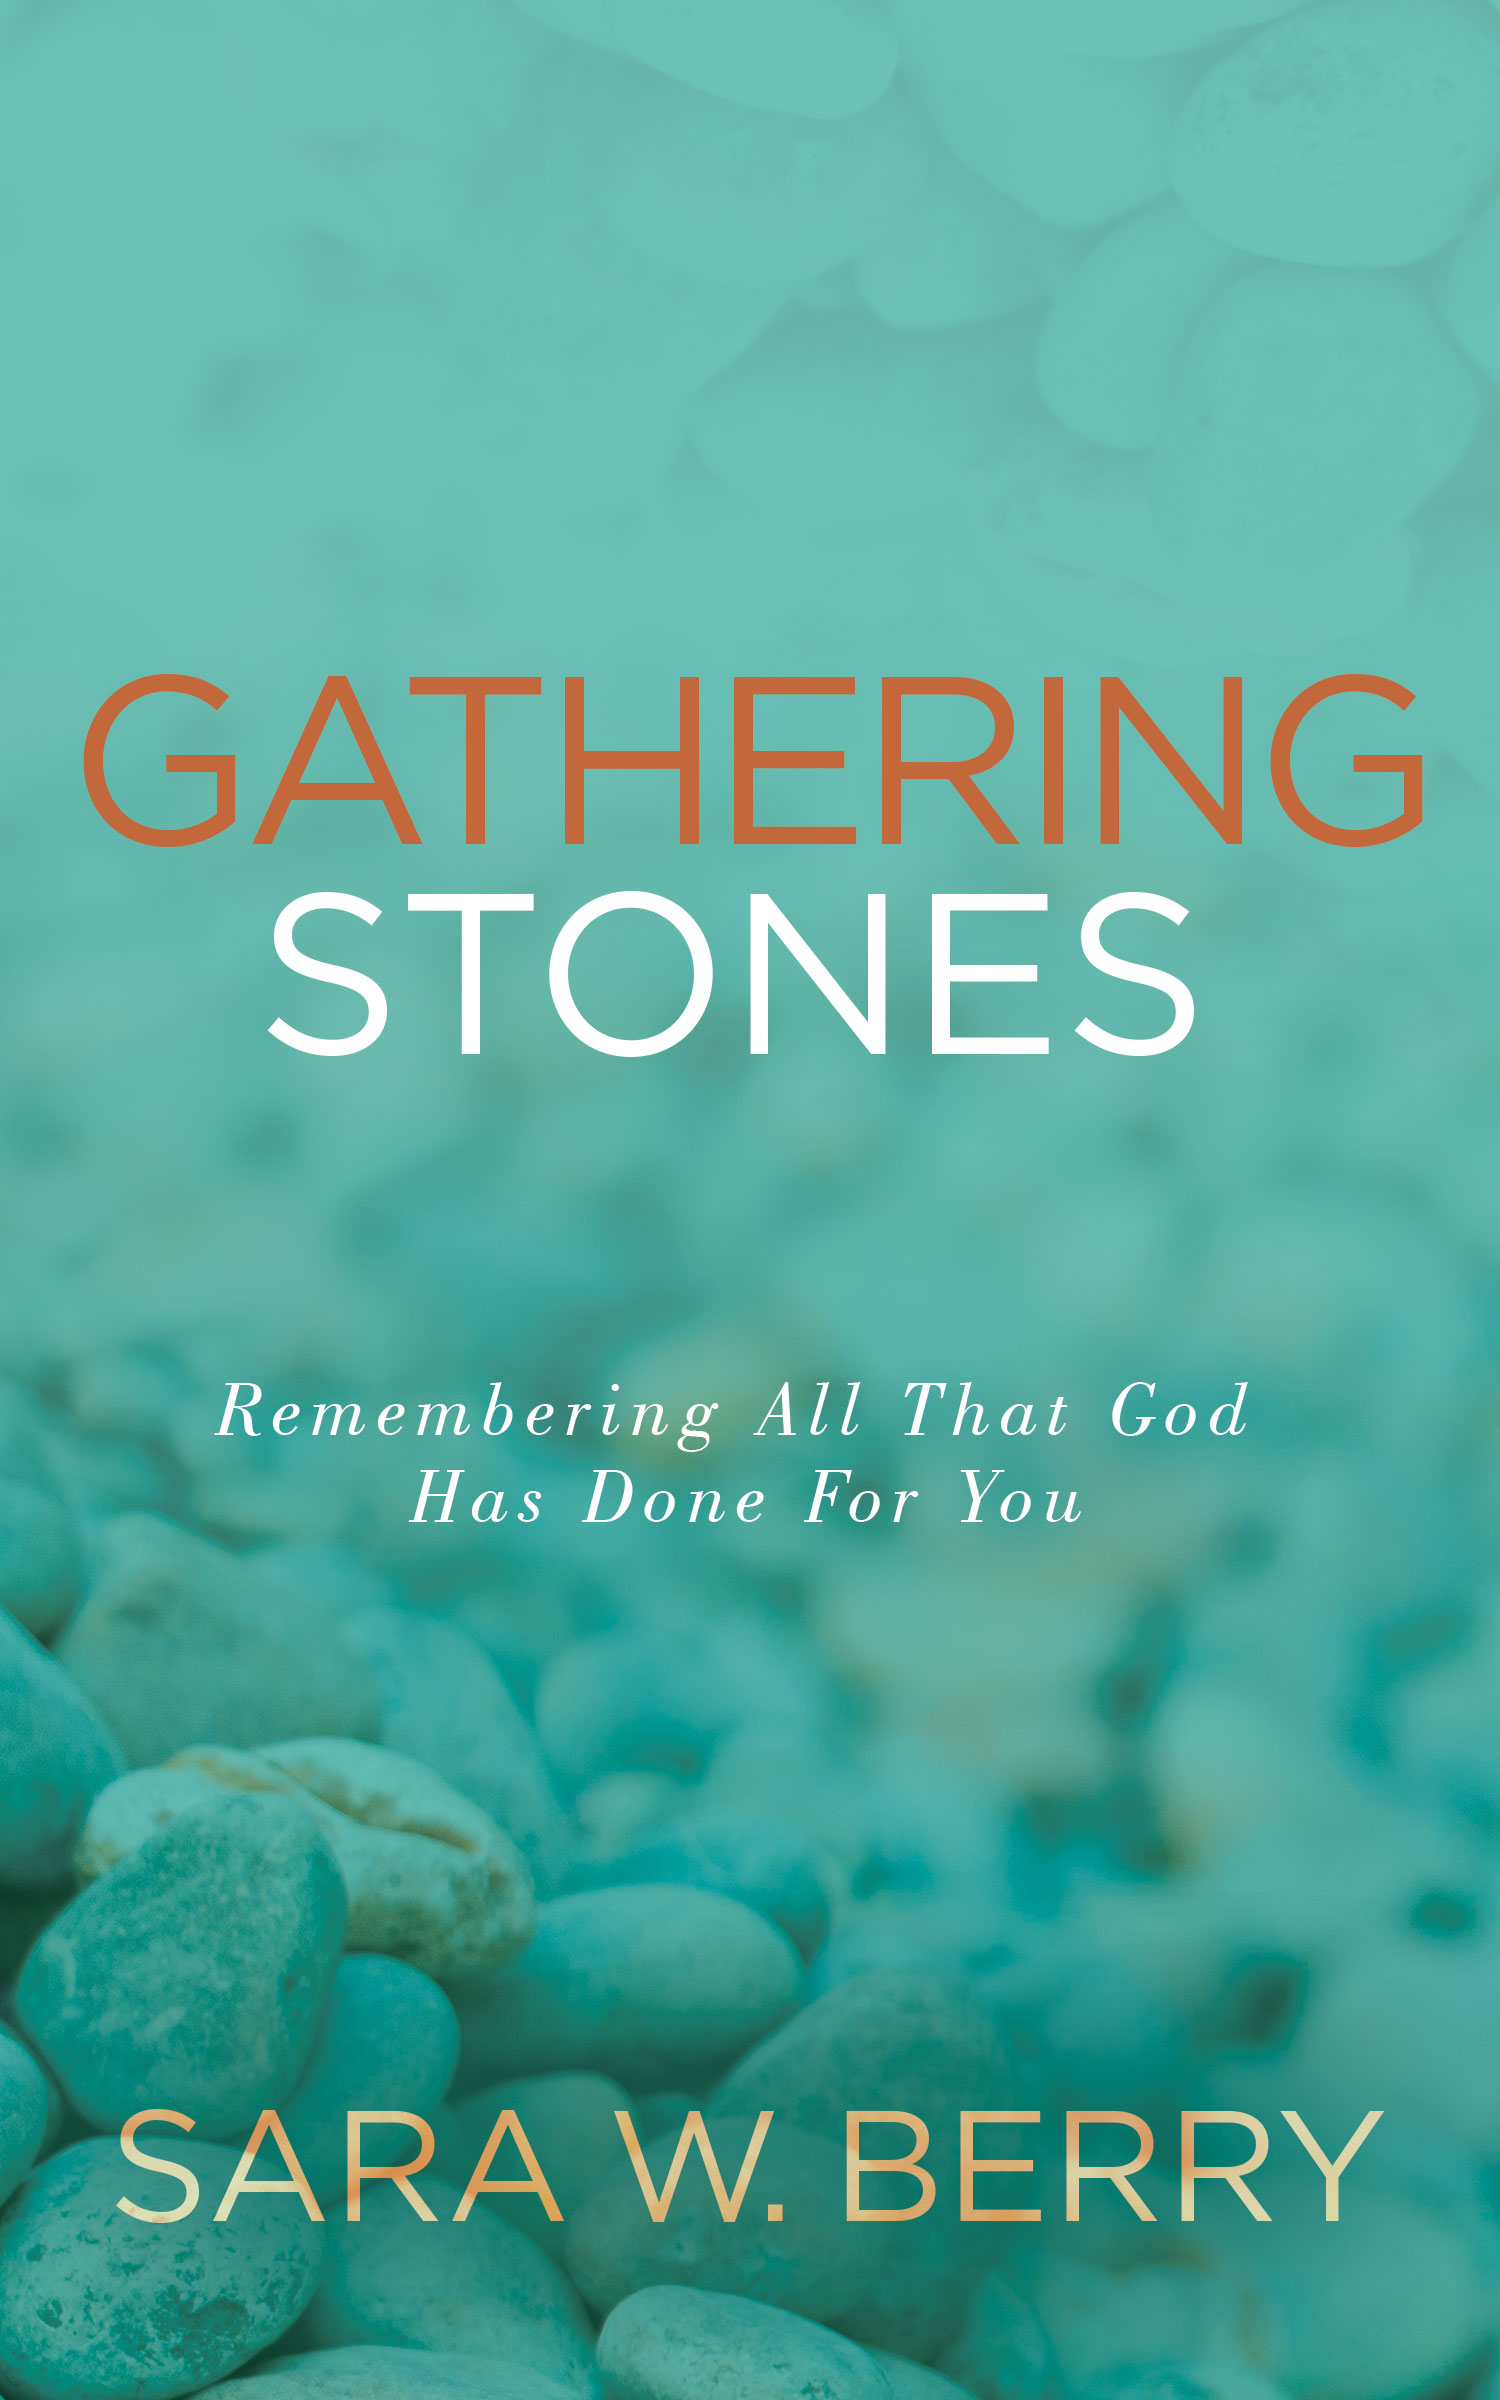 Gathering Stones: Remembering All That God Has Done For You